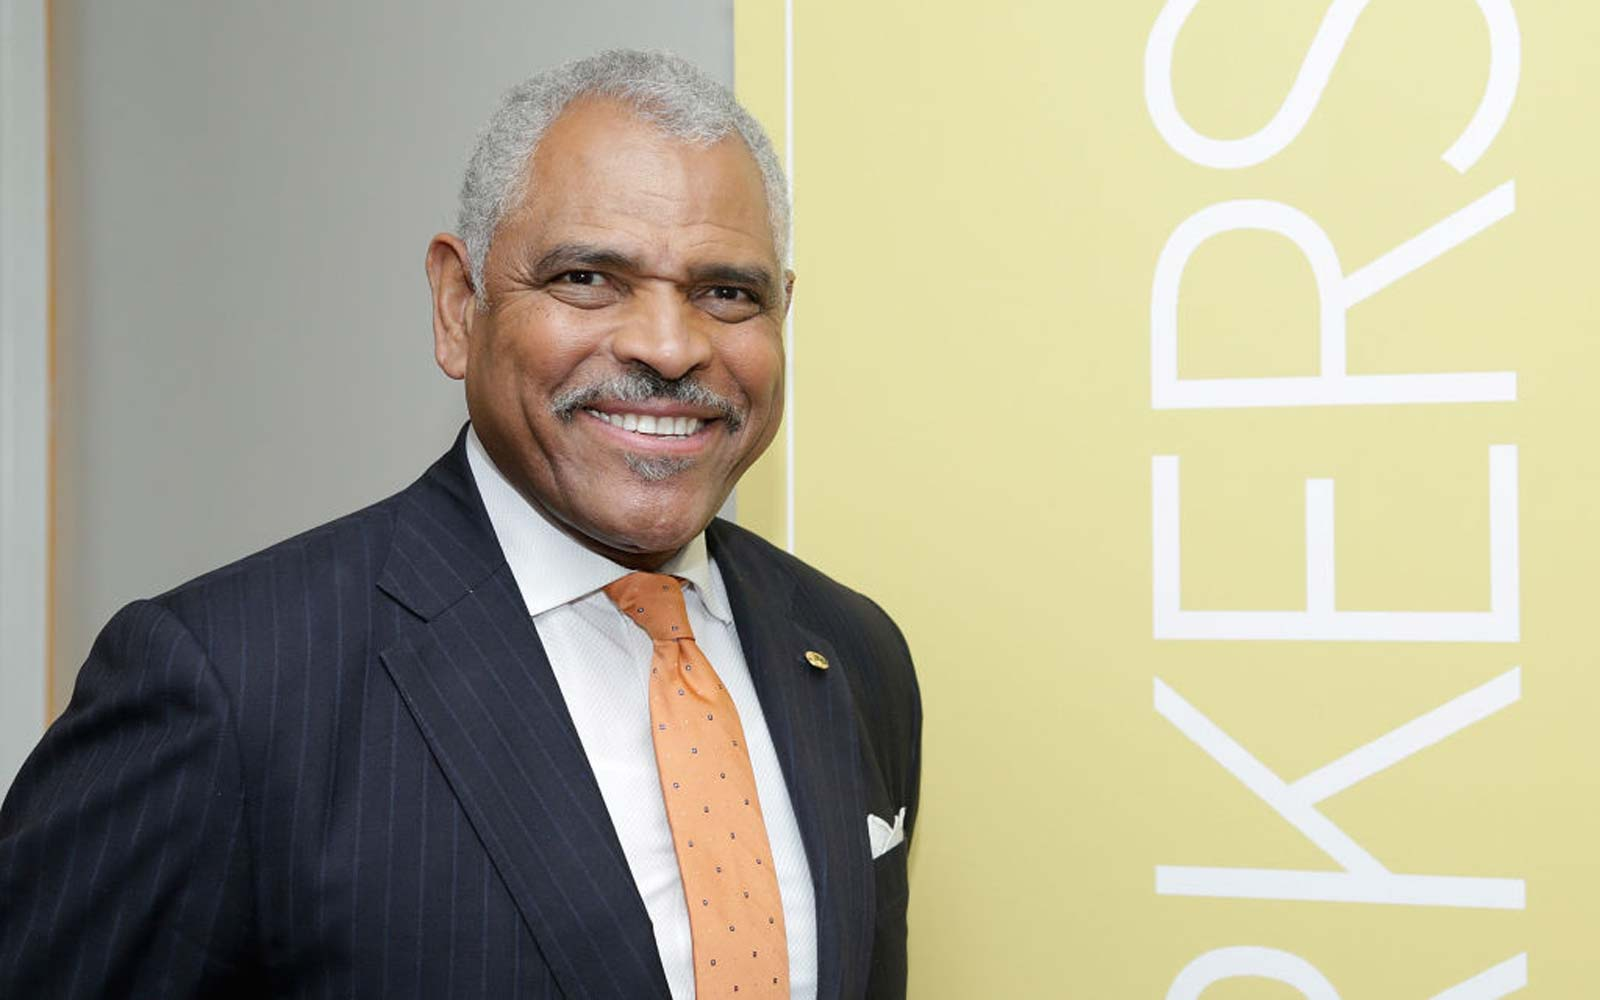 CEO of Carnival Corporation Arnold Donald attends the LightWorkers Crosby launch event at Crosby Street Hotel